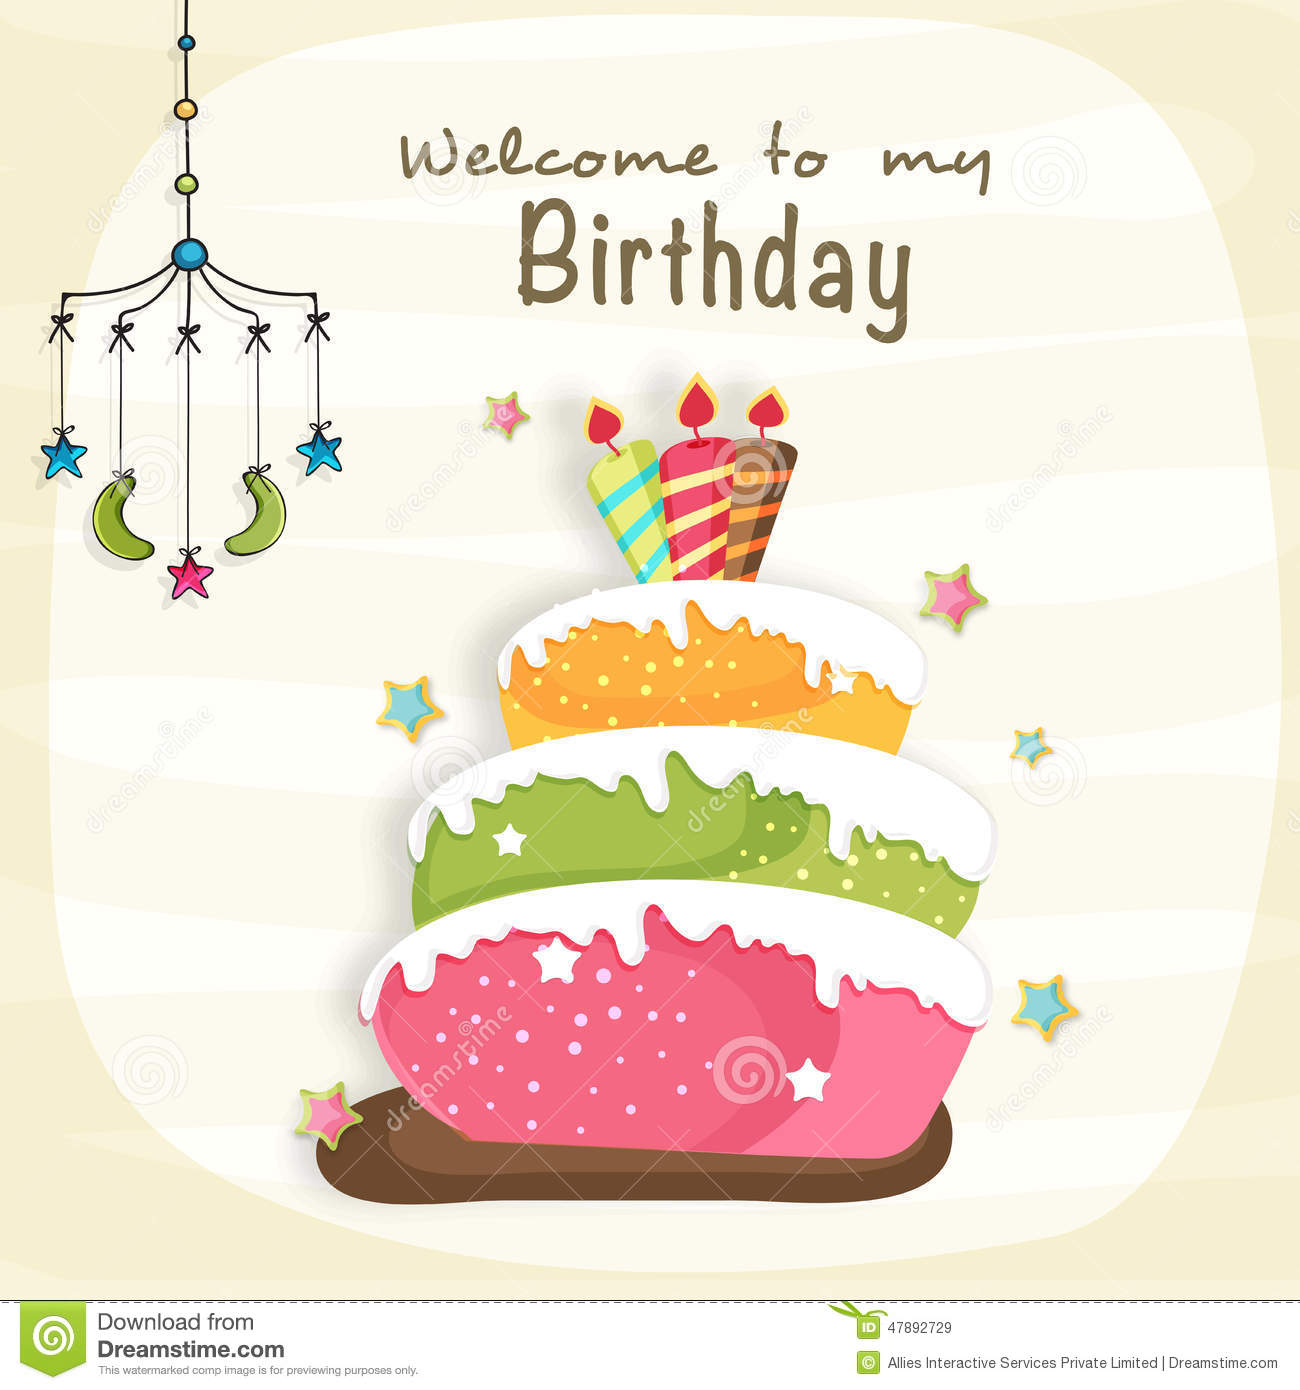 Birthday celebration invitation card design stock illustration birthday celebration invitation card design filmwisefo